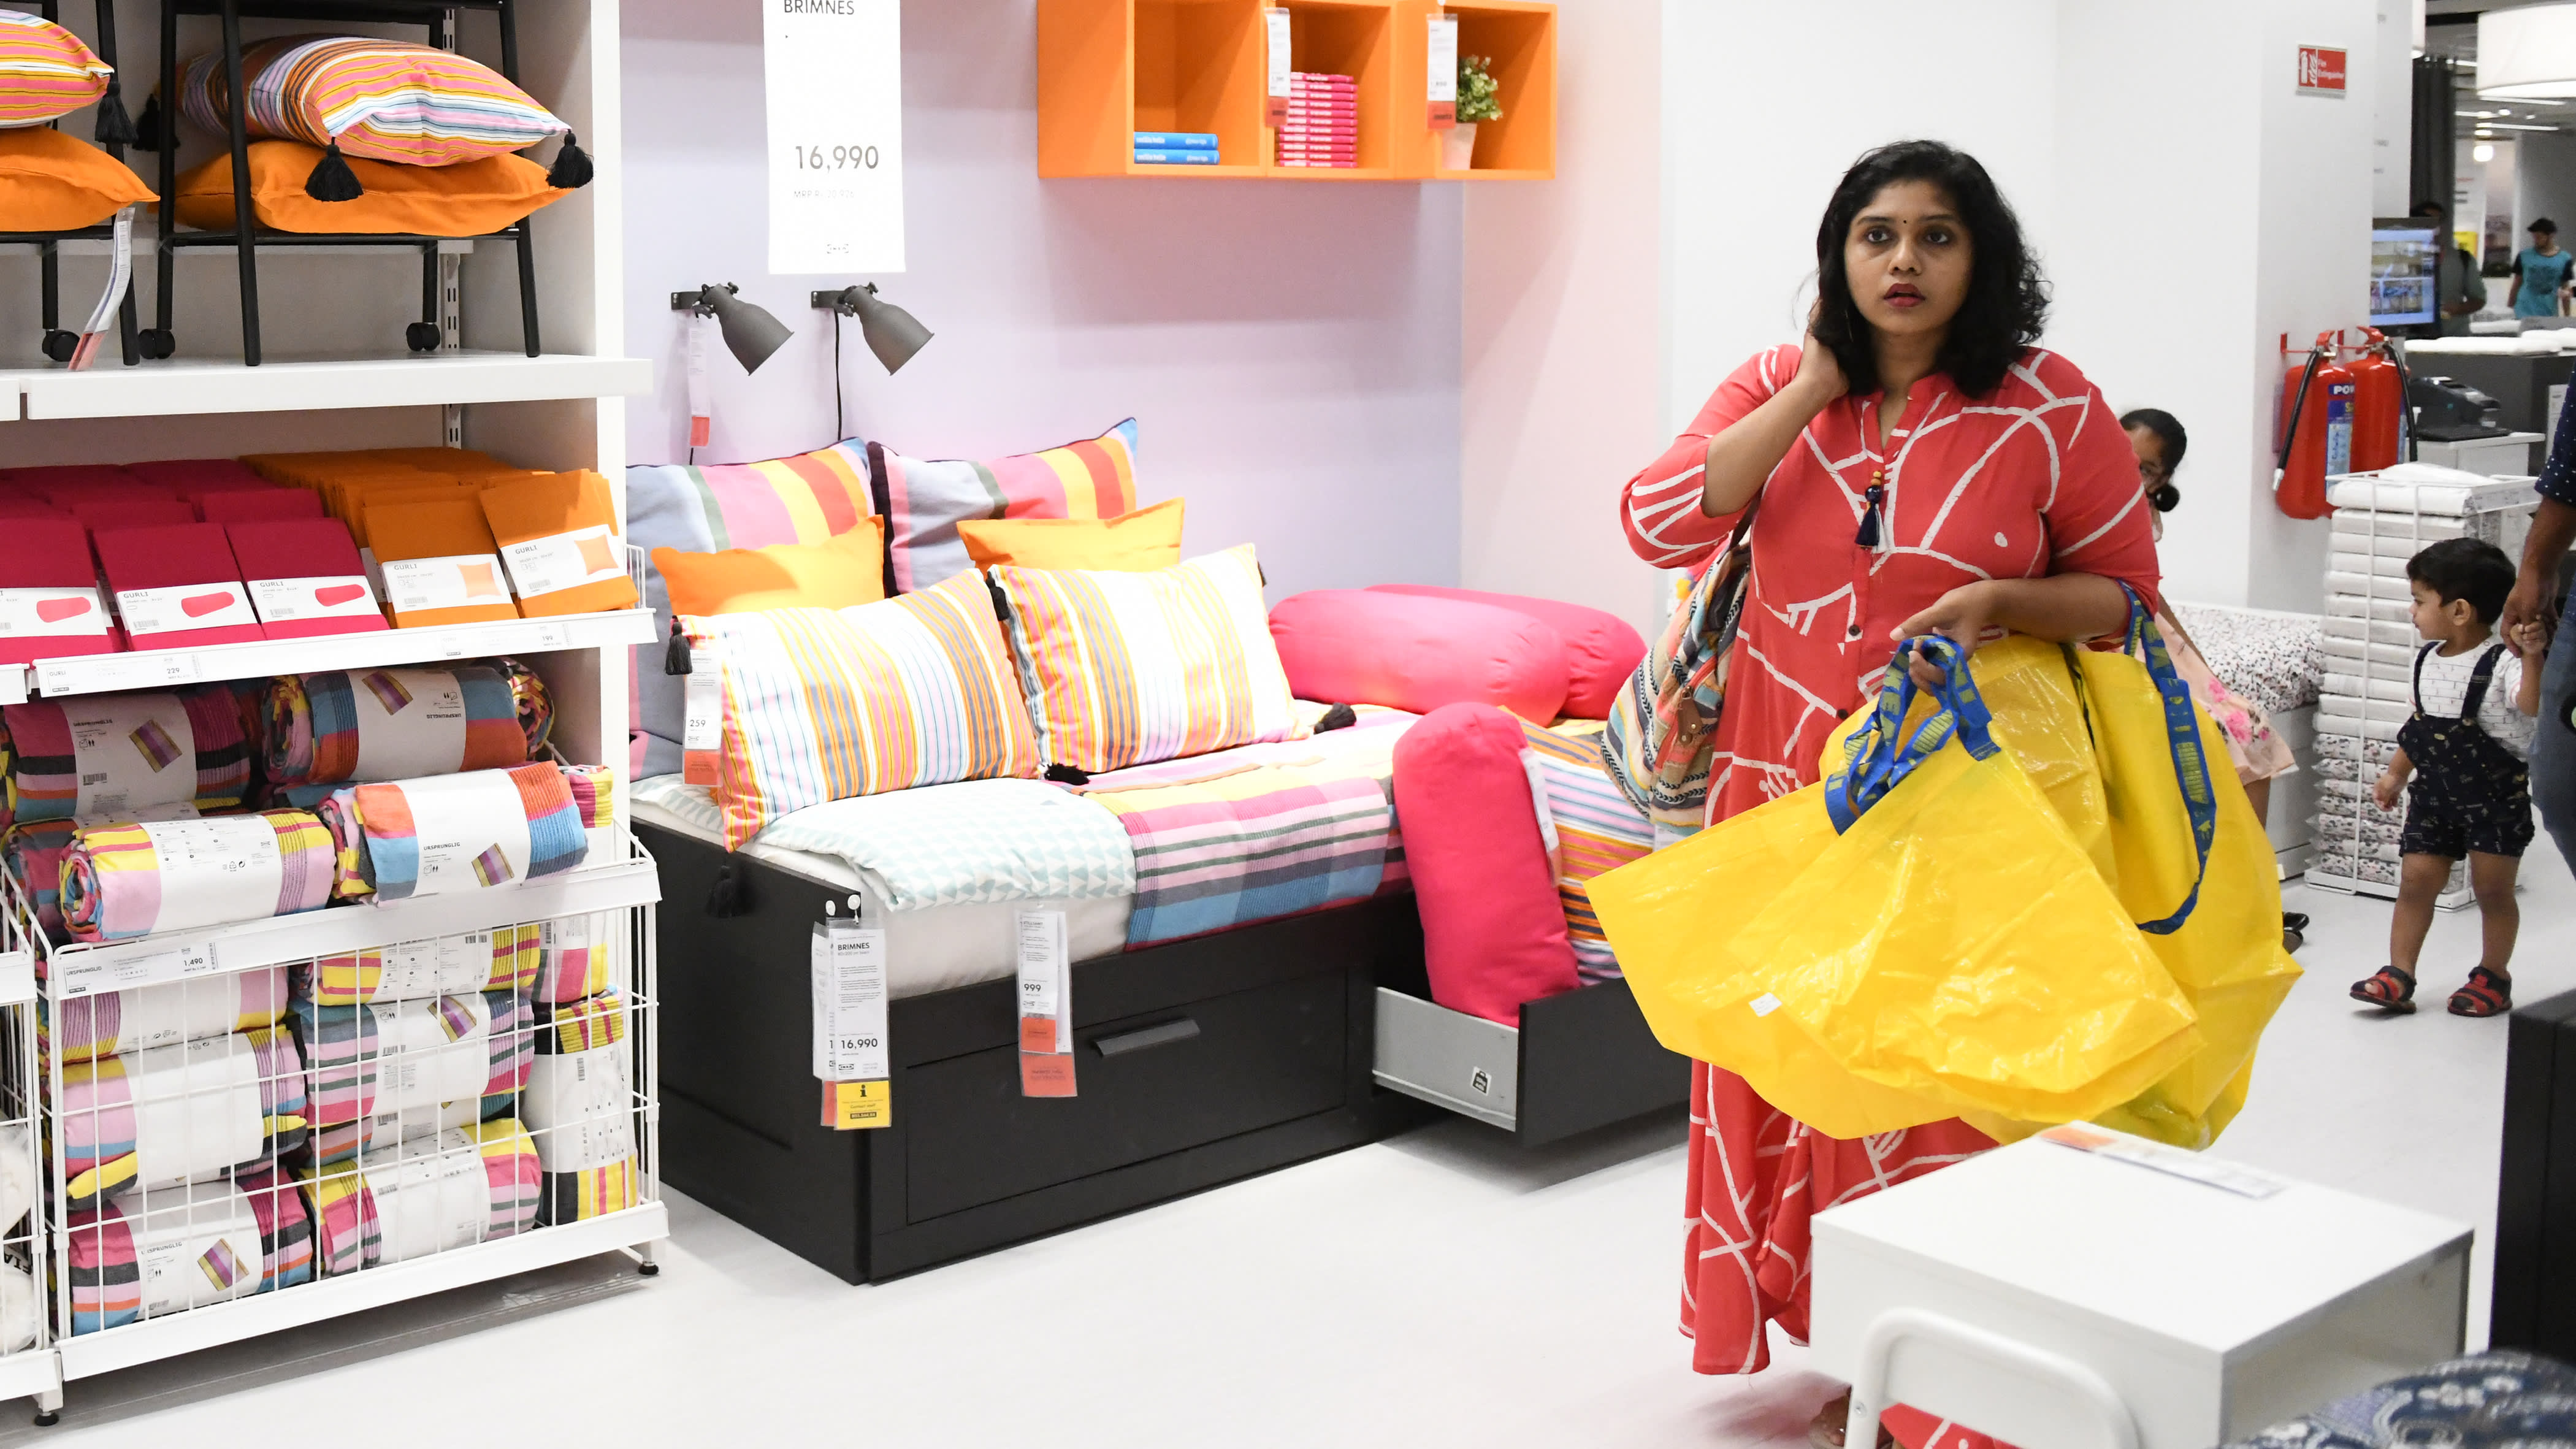 Shoppers flock to Ikea's debut Indian store - Nikkei Asian Review